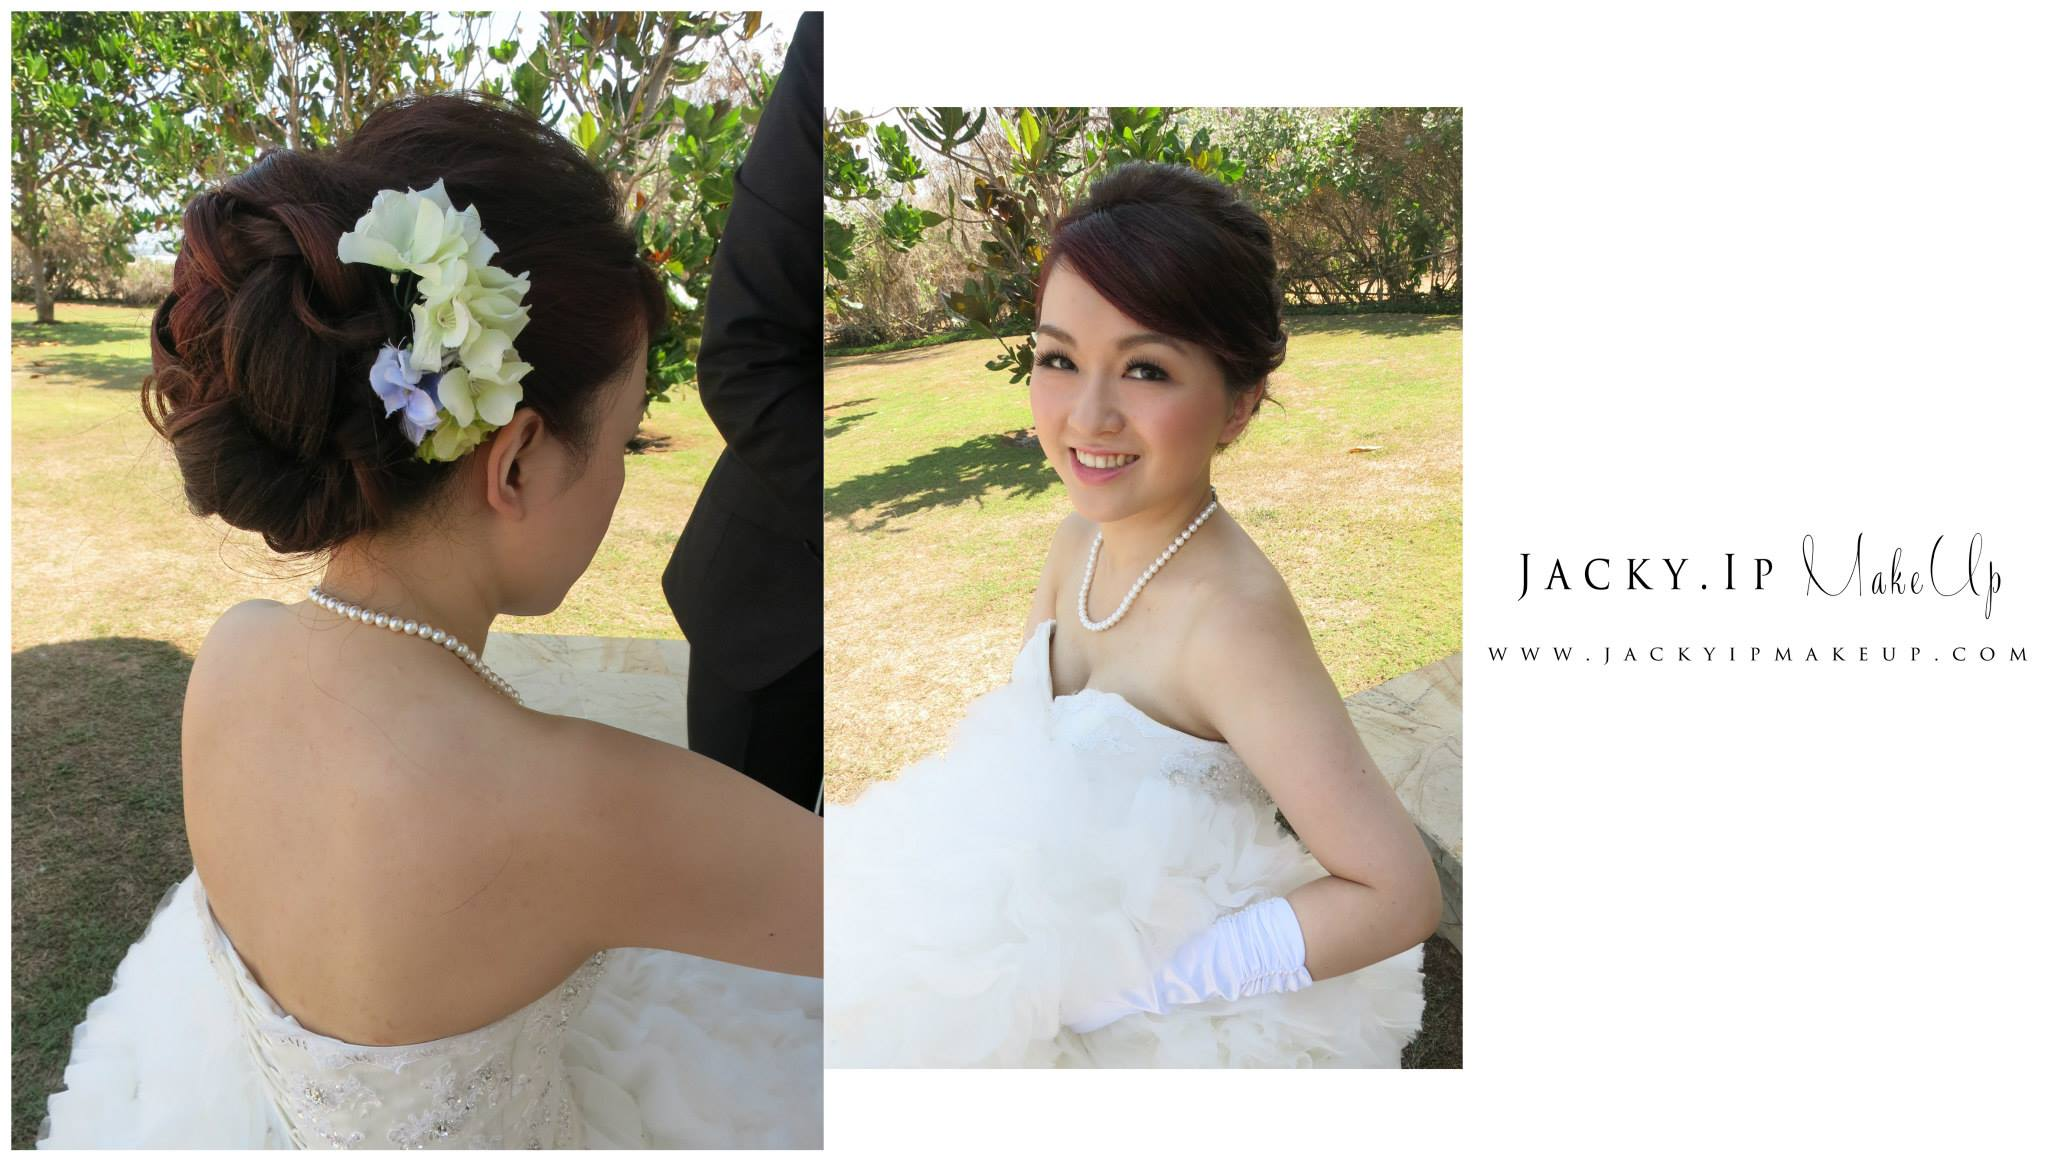 MakeUp & Hair By Jacky.Ip@Bali